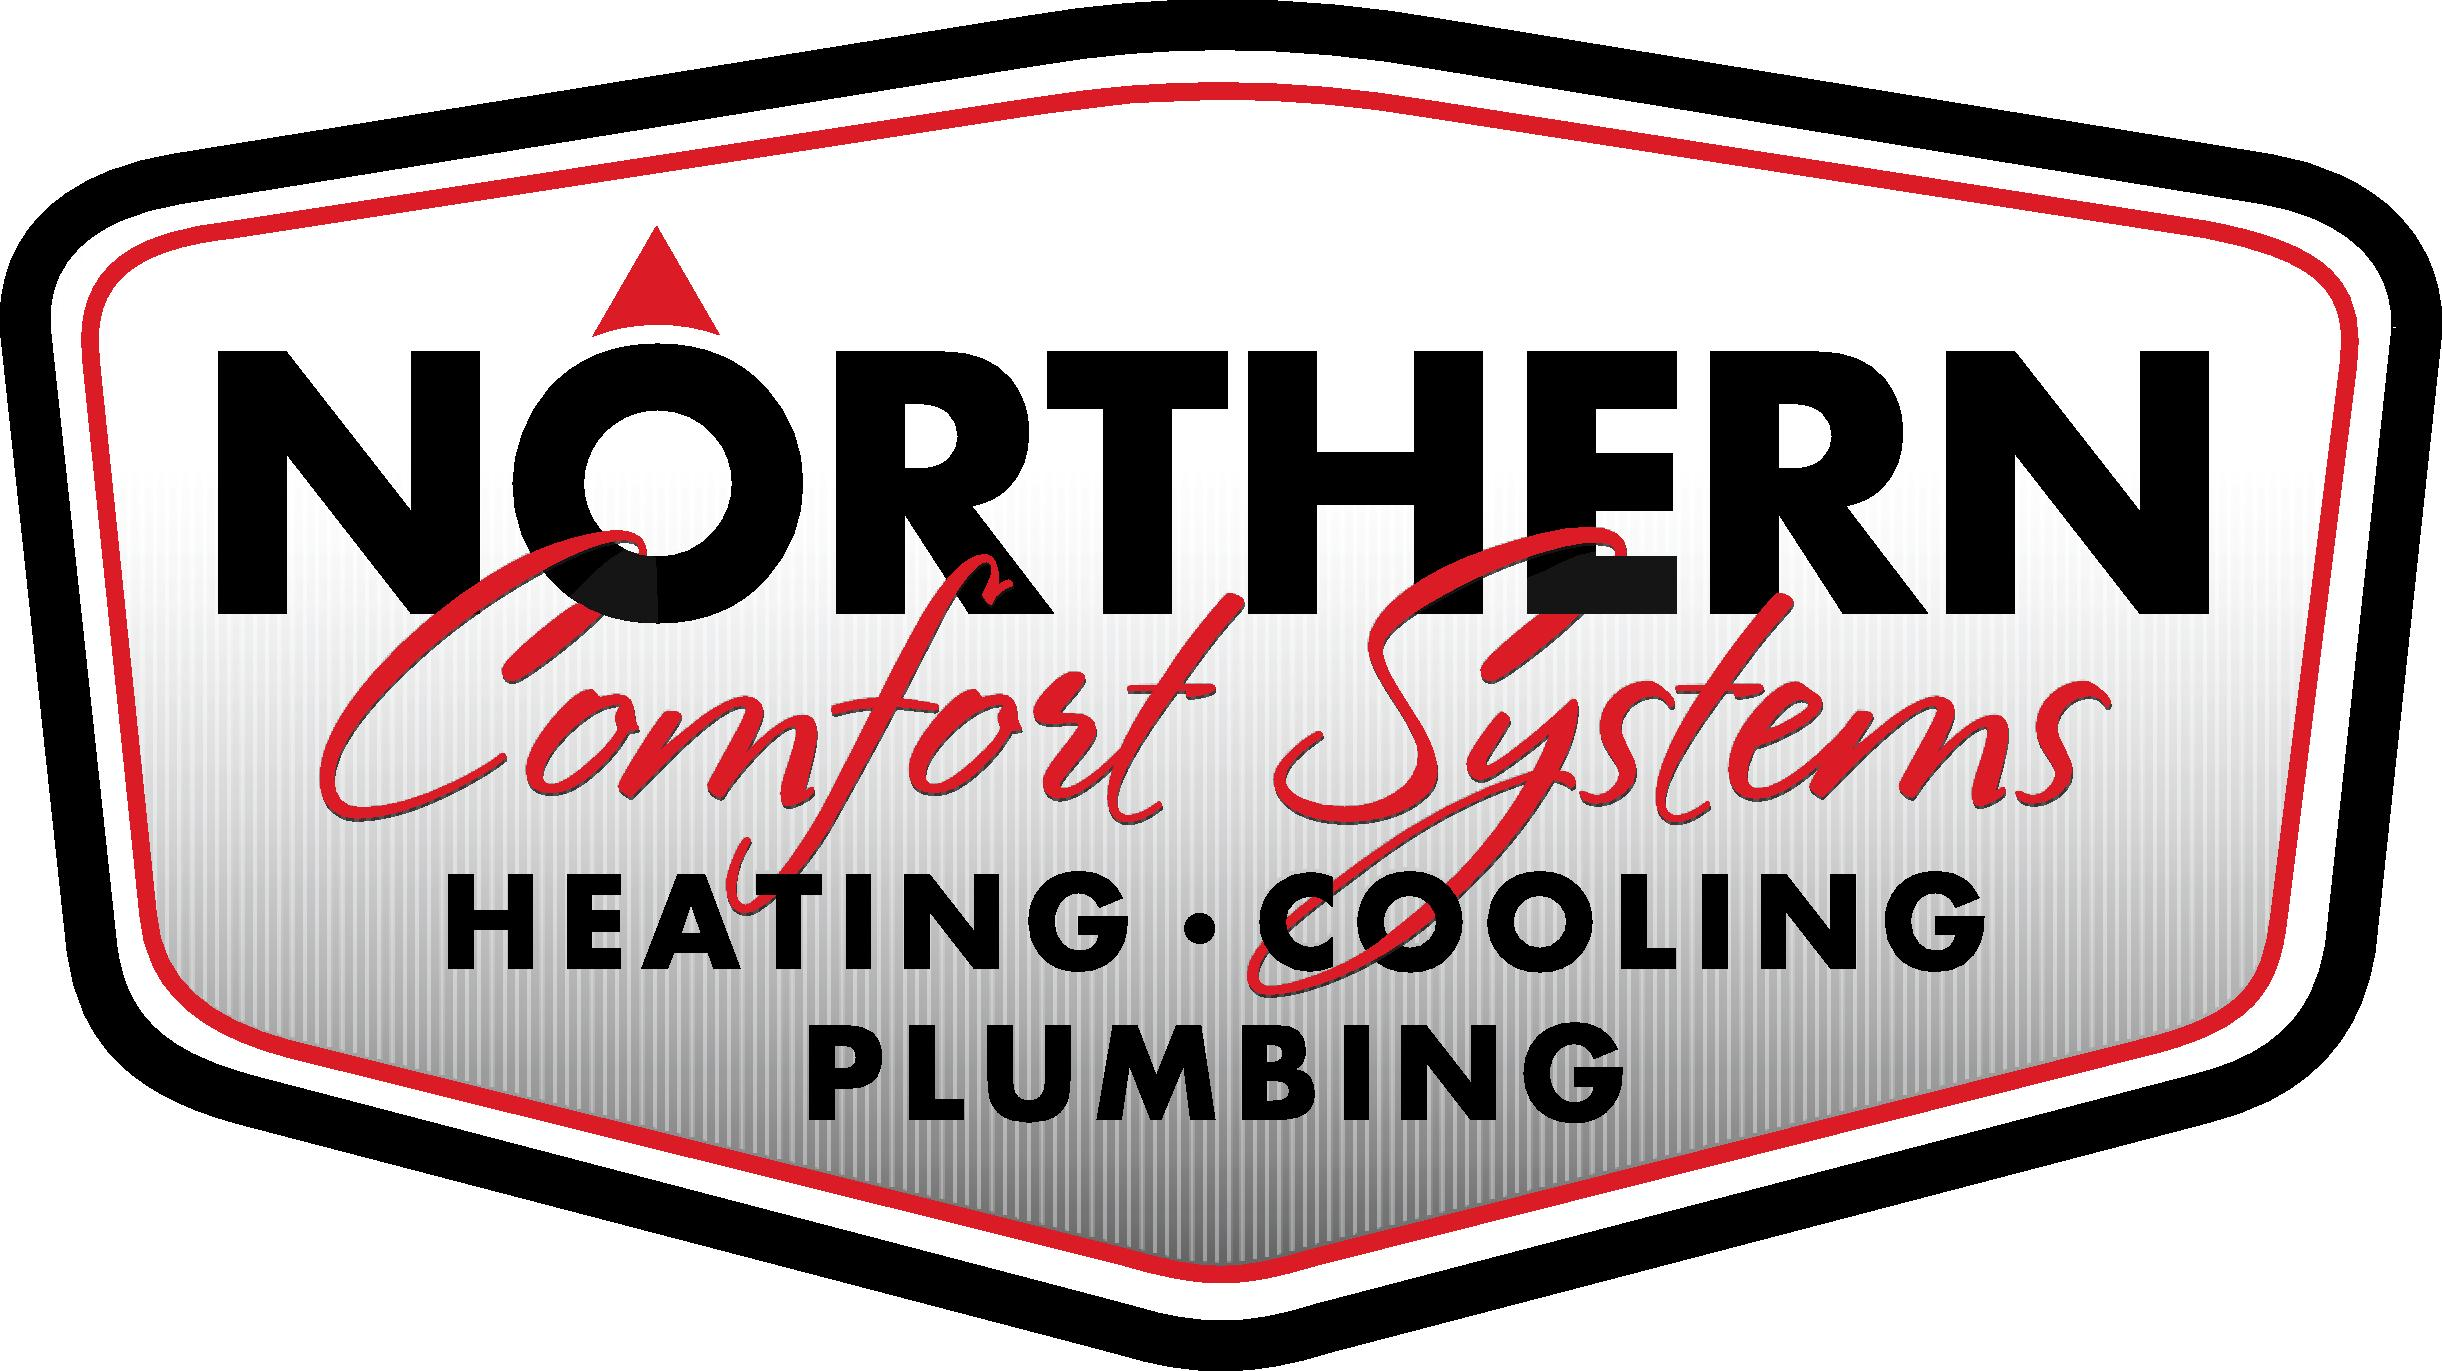 NORTHERN COMFORT SYSTEMS logo